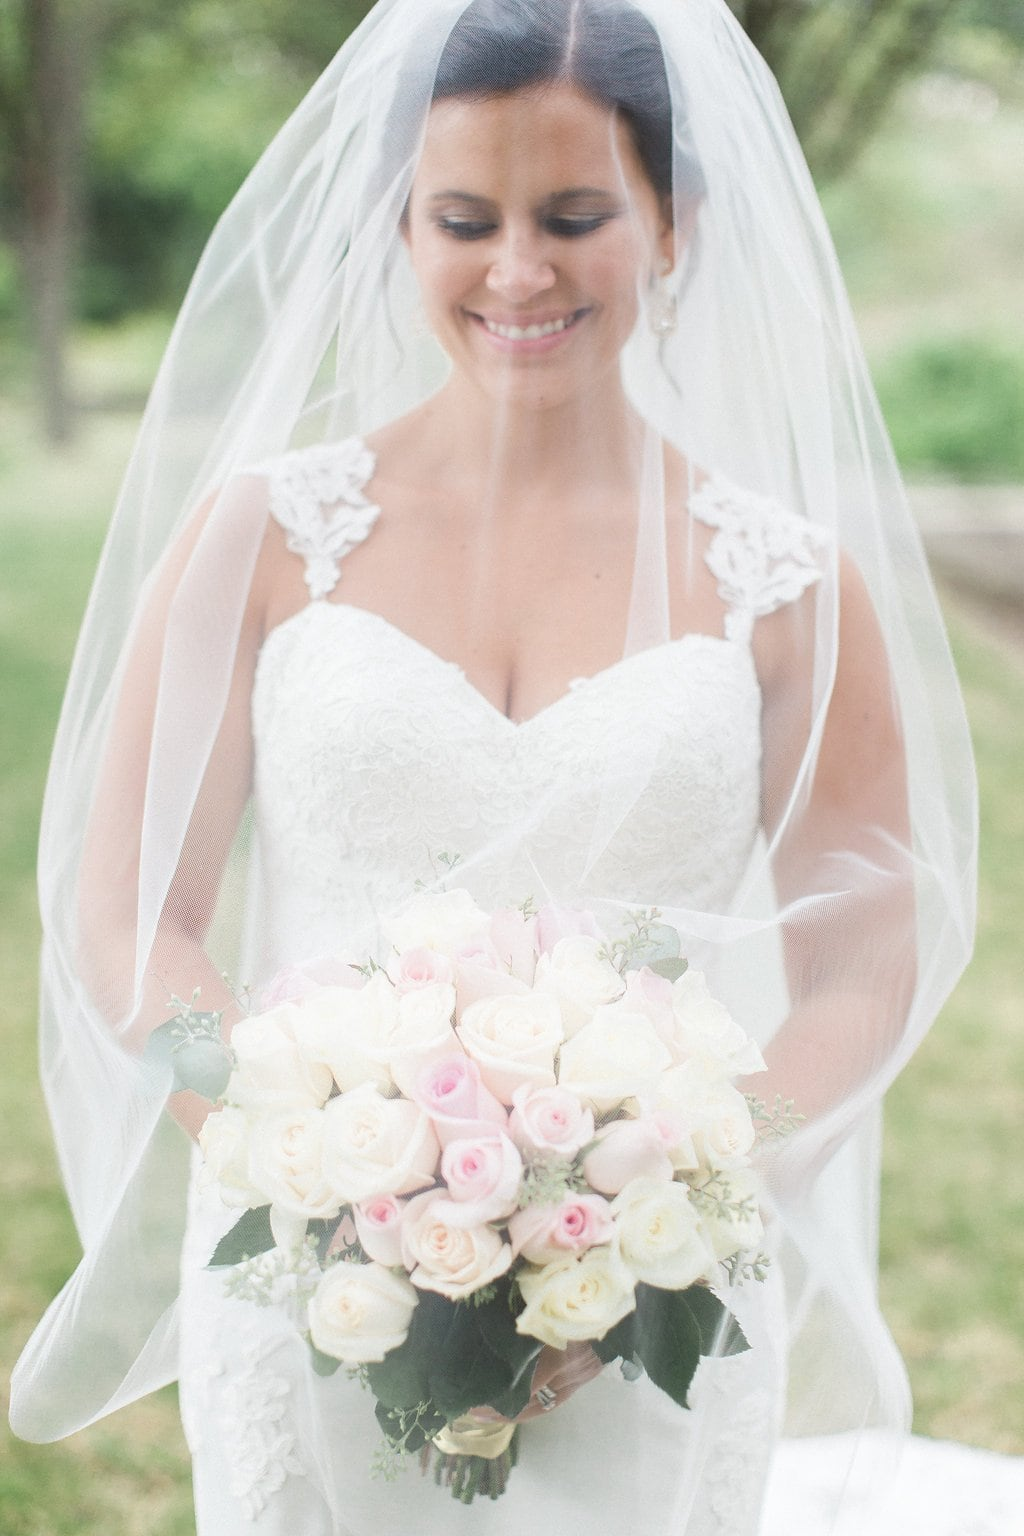 Bride with veil over her face and bouquet